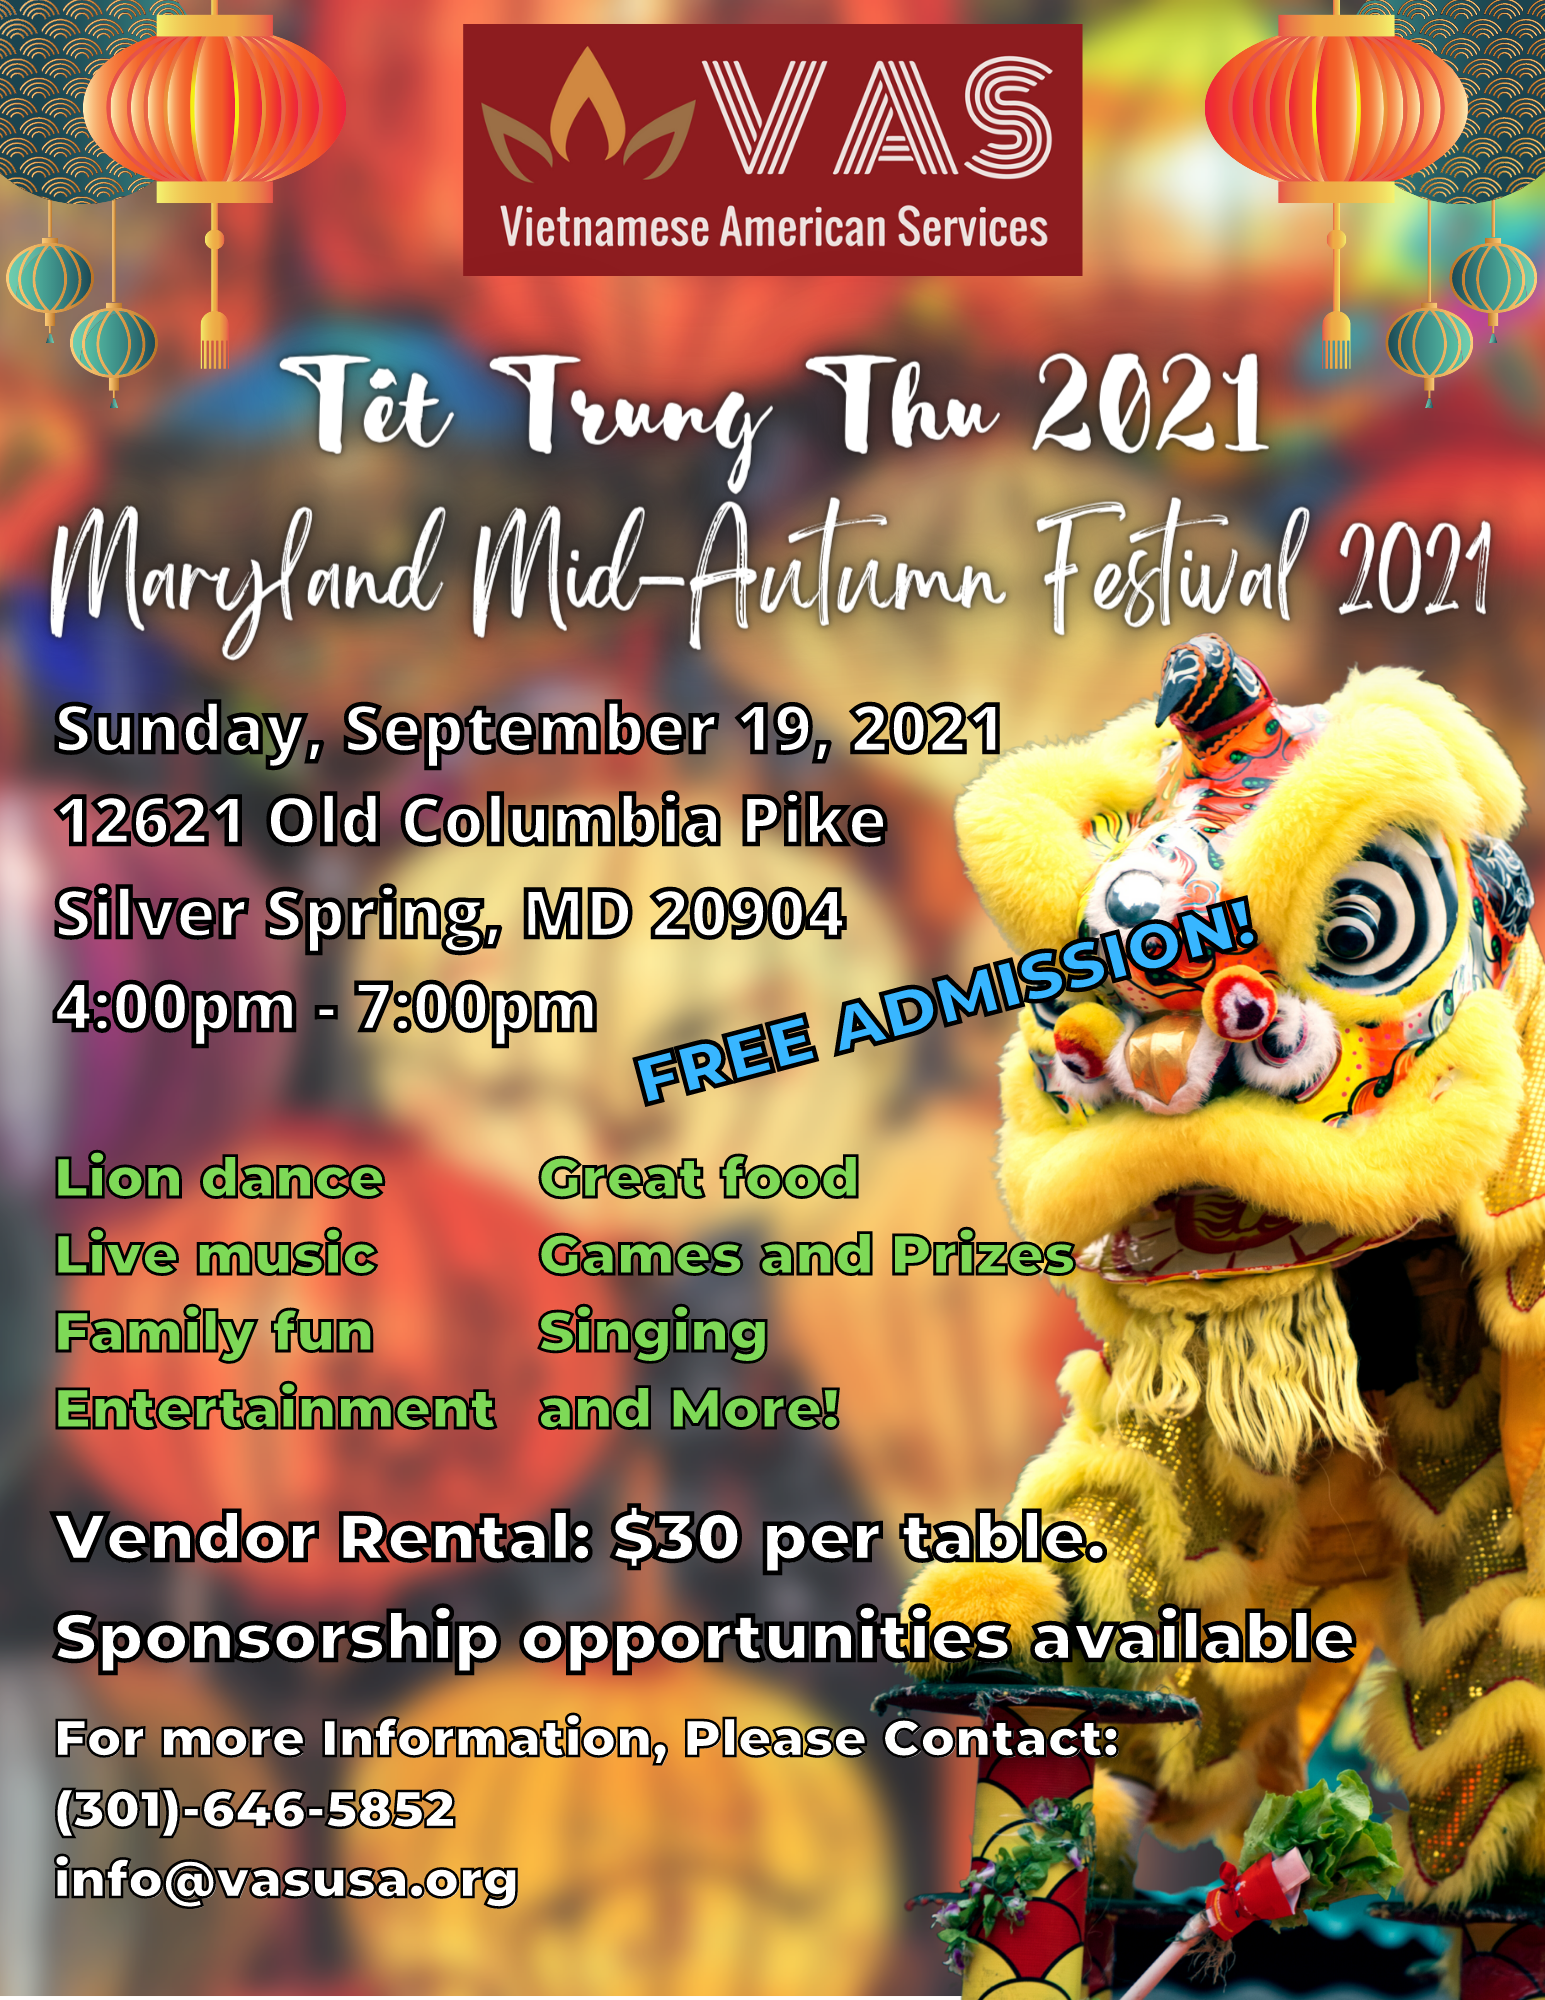 VAS Upcoming event: The Mid Autumn festival returns for 2021. Day: September 19, 2021. Time: 4pm - 7pm. Address: 12621 Old Columbia Pike, Silver Spring, MD, 20904